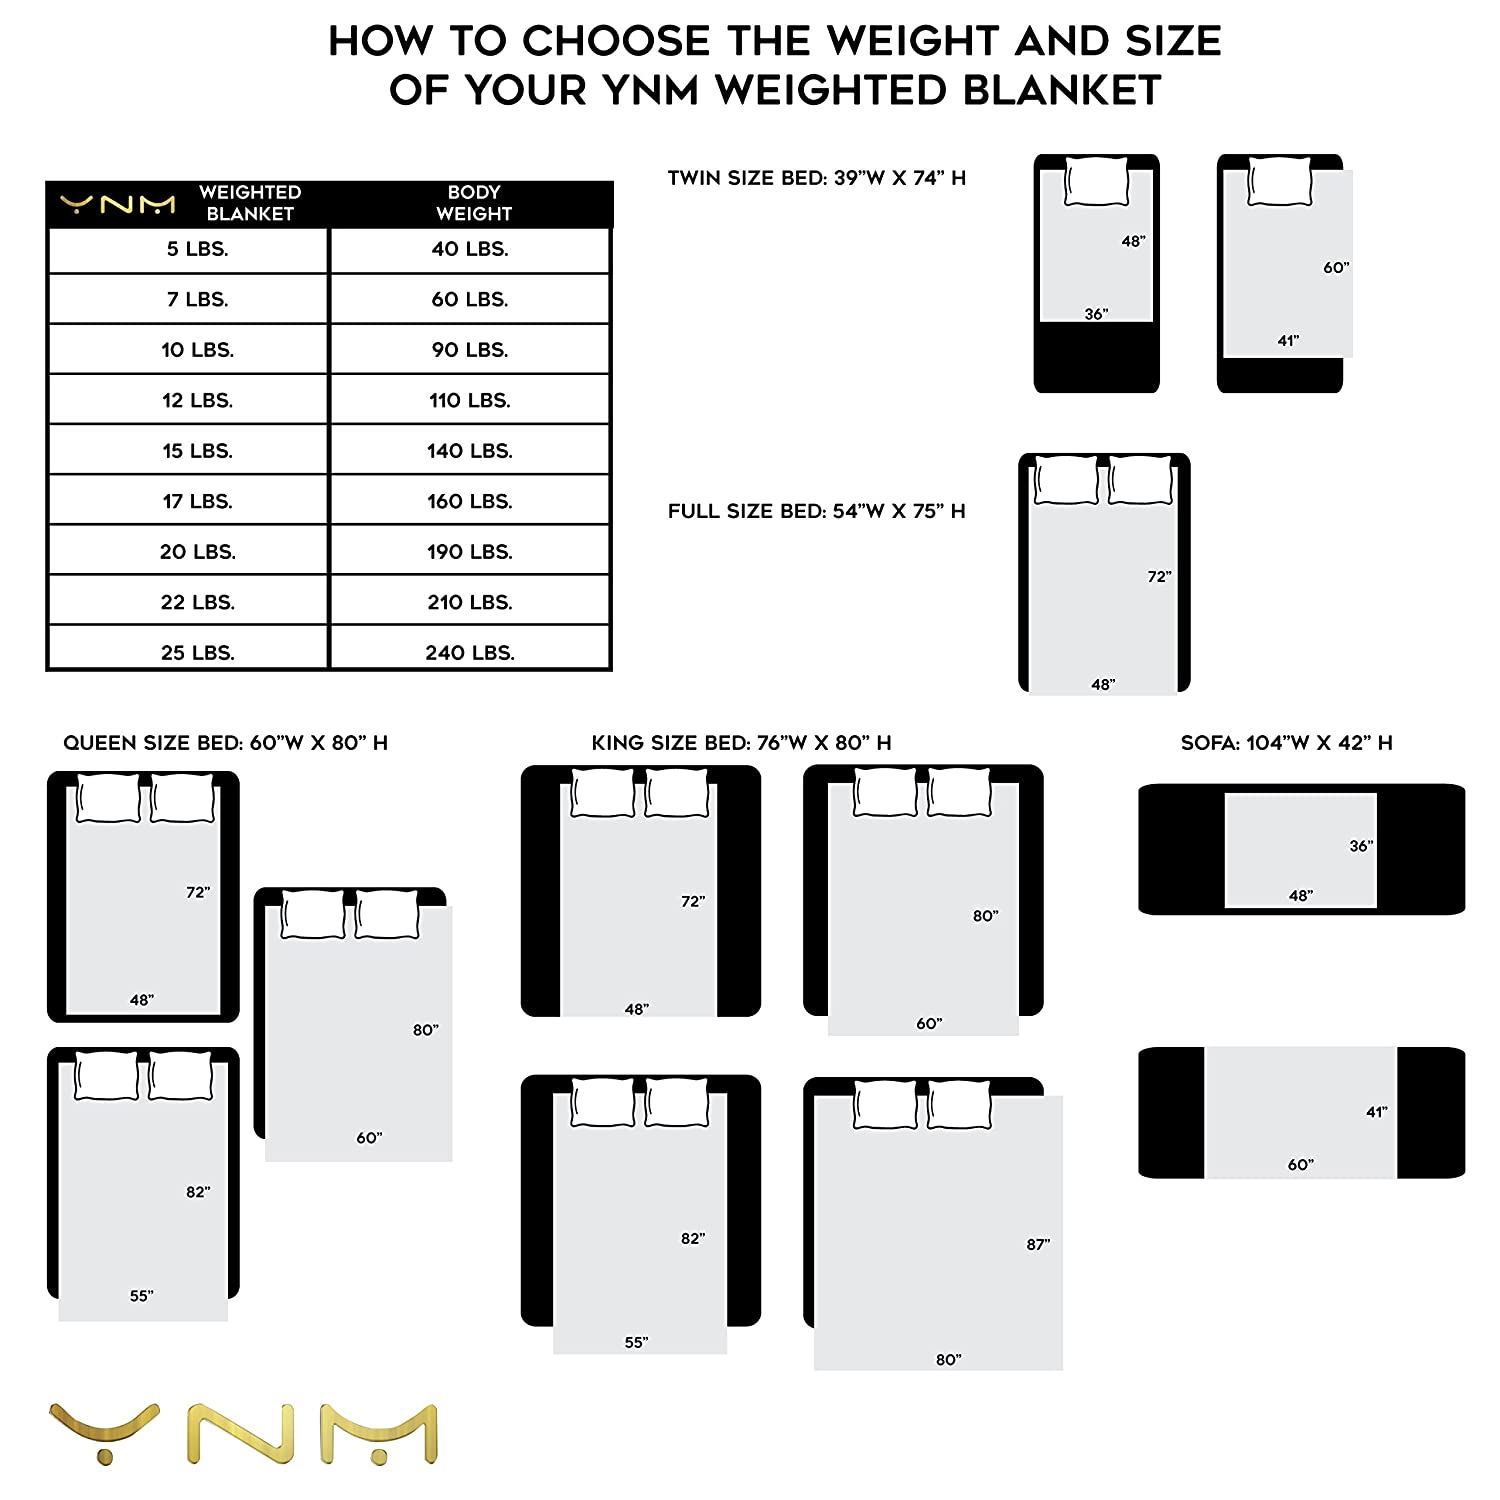 YNM Weighted Blanket - Weight And Size Chart